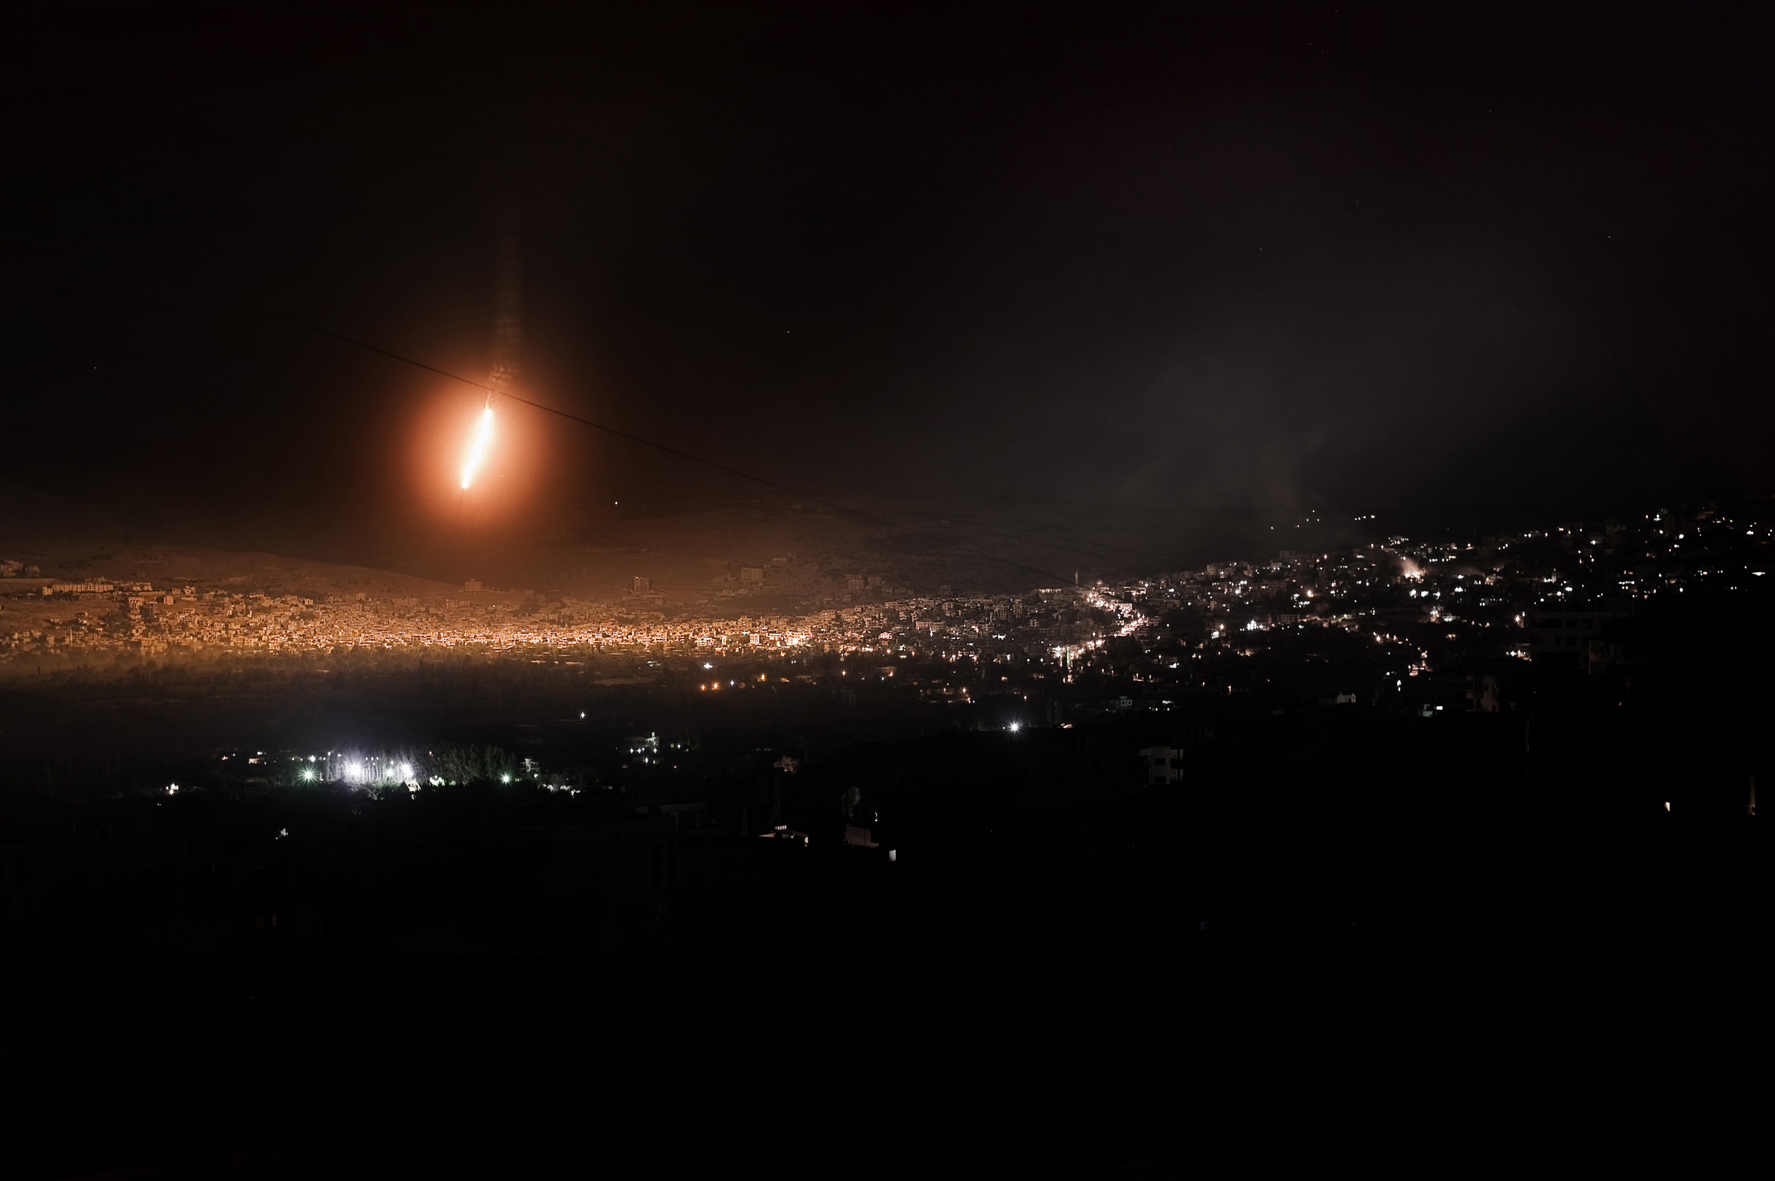 Alessio Romenzi. Syria, Zabadani. Heavy shelling on the restive village of Zabadani. At night Al Assad army shot